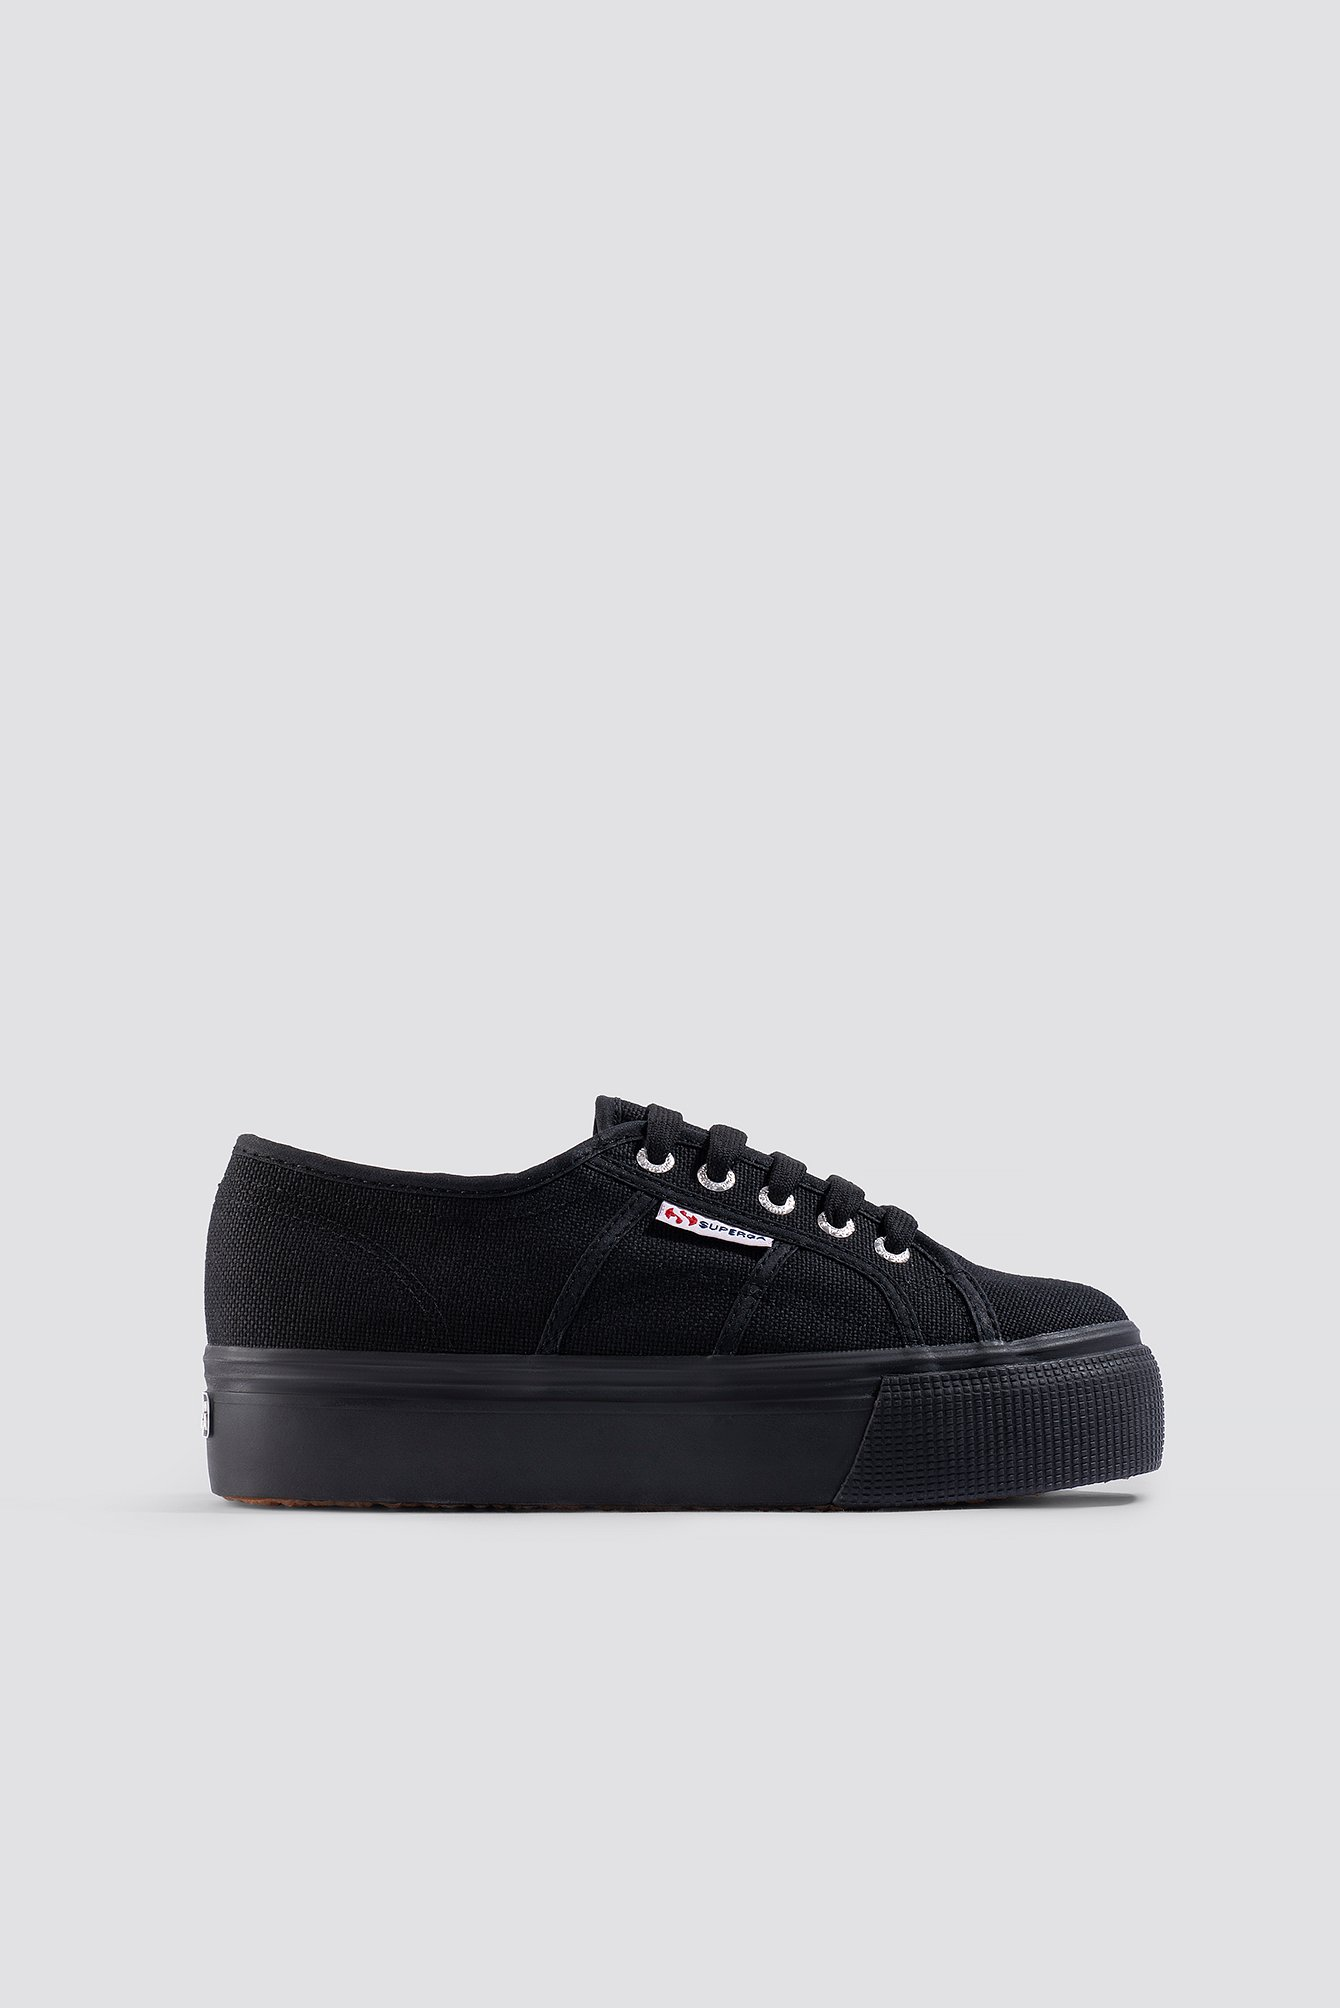 Superga Acotw Linea 2790 Black